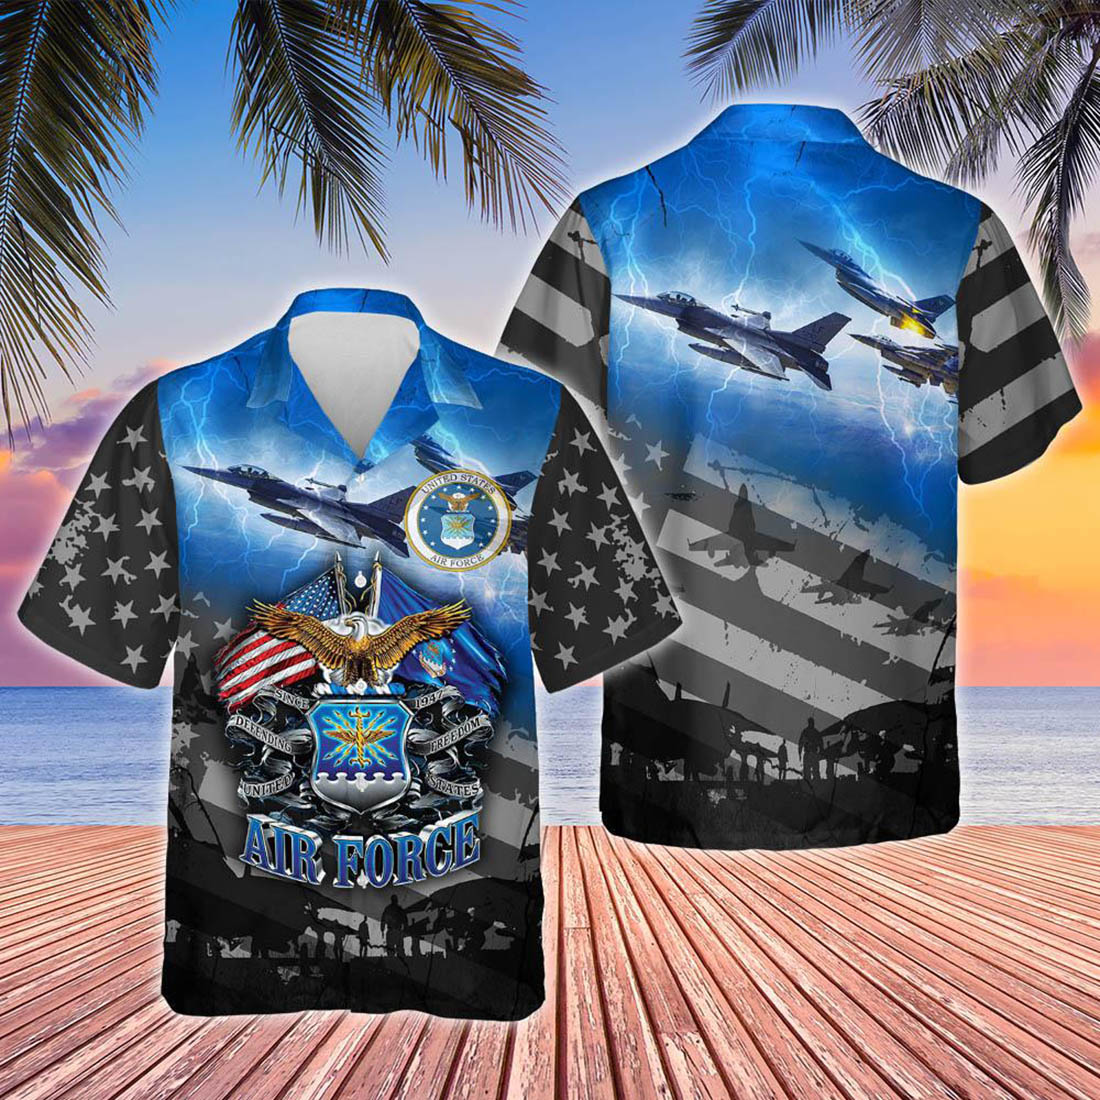 Proudly served United States air force hawaiian shirt